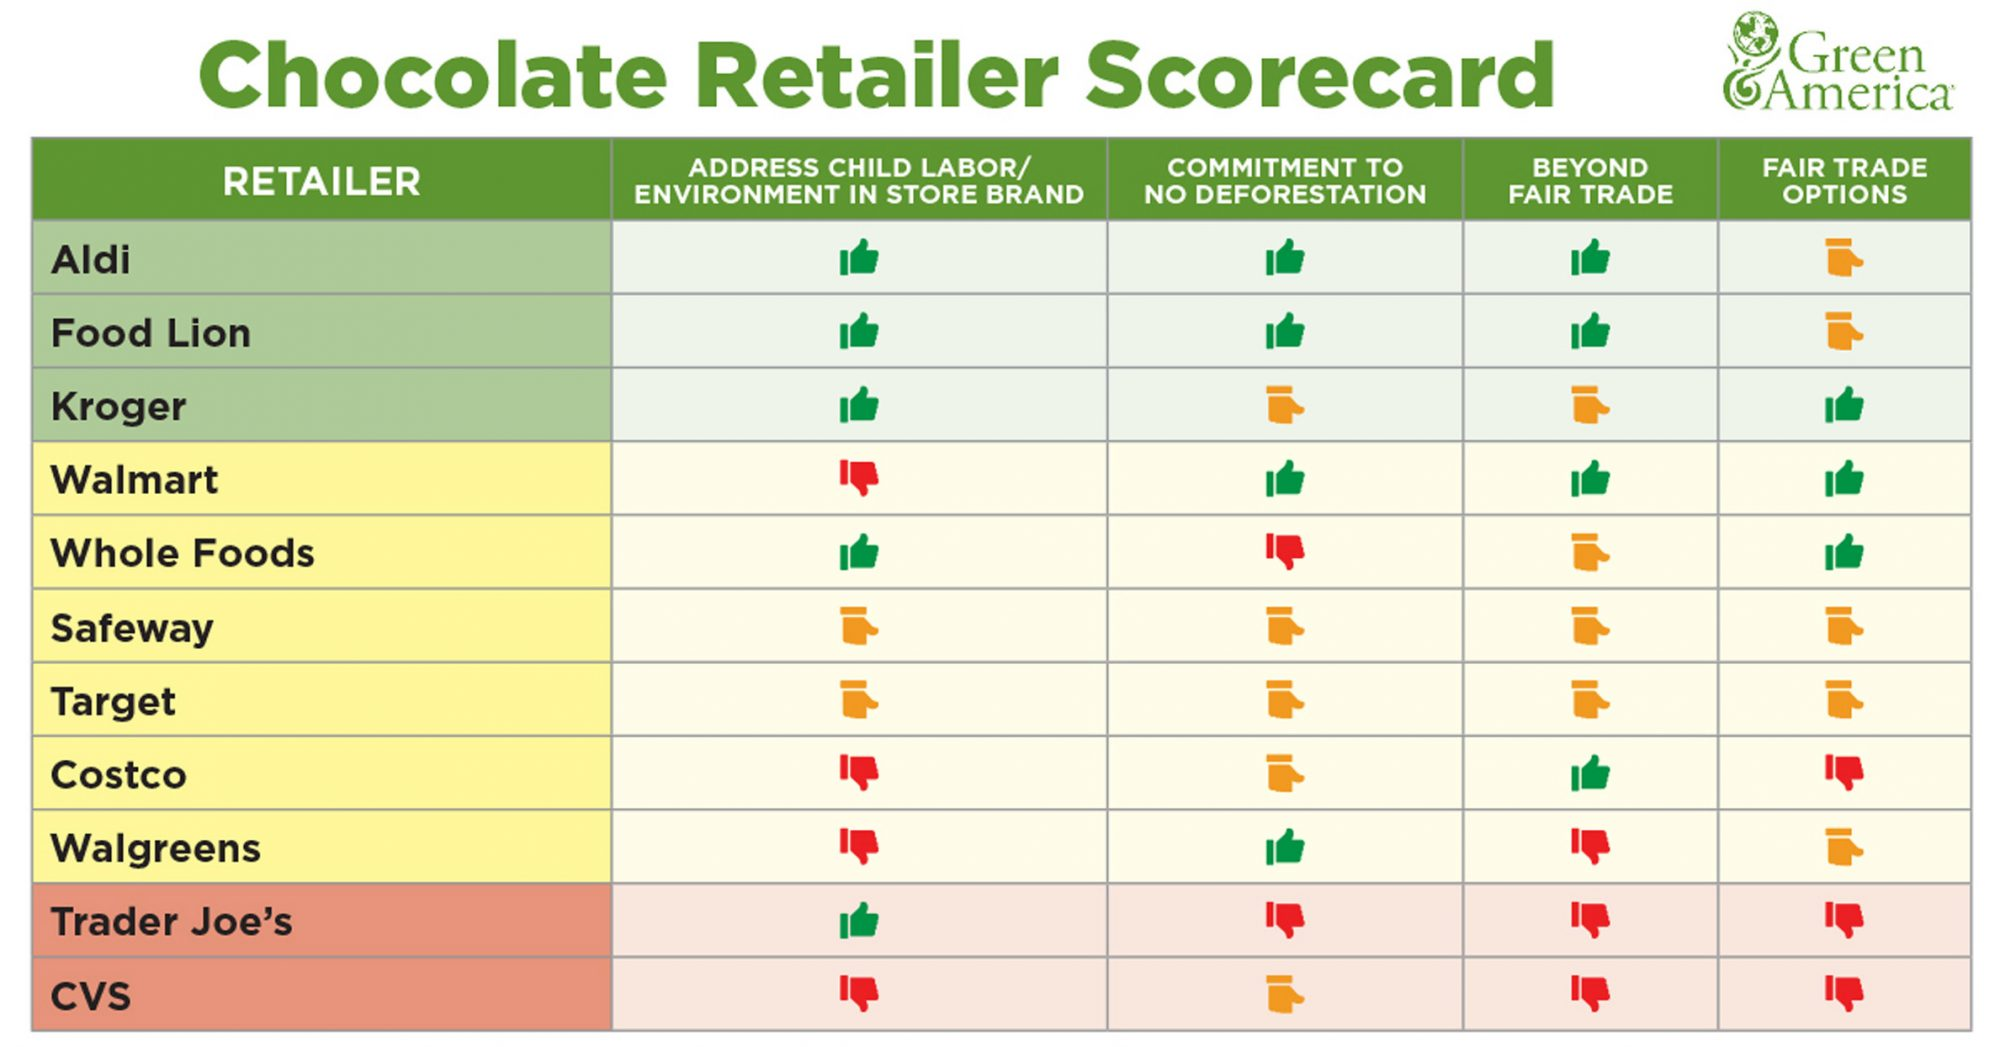 Why You May Want to Think Twice About Buying Chocolate From Trader Joe's or Costco?